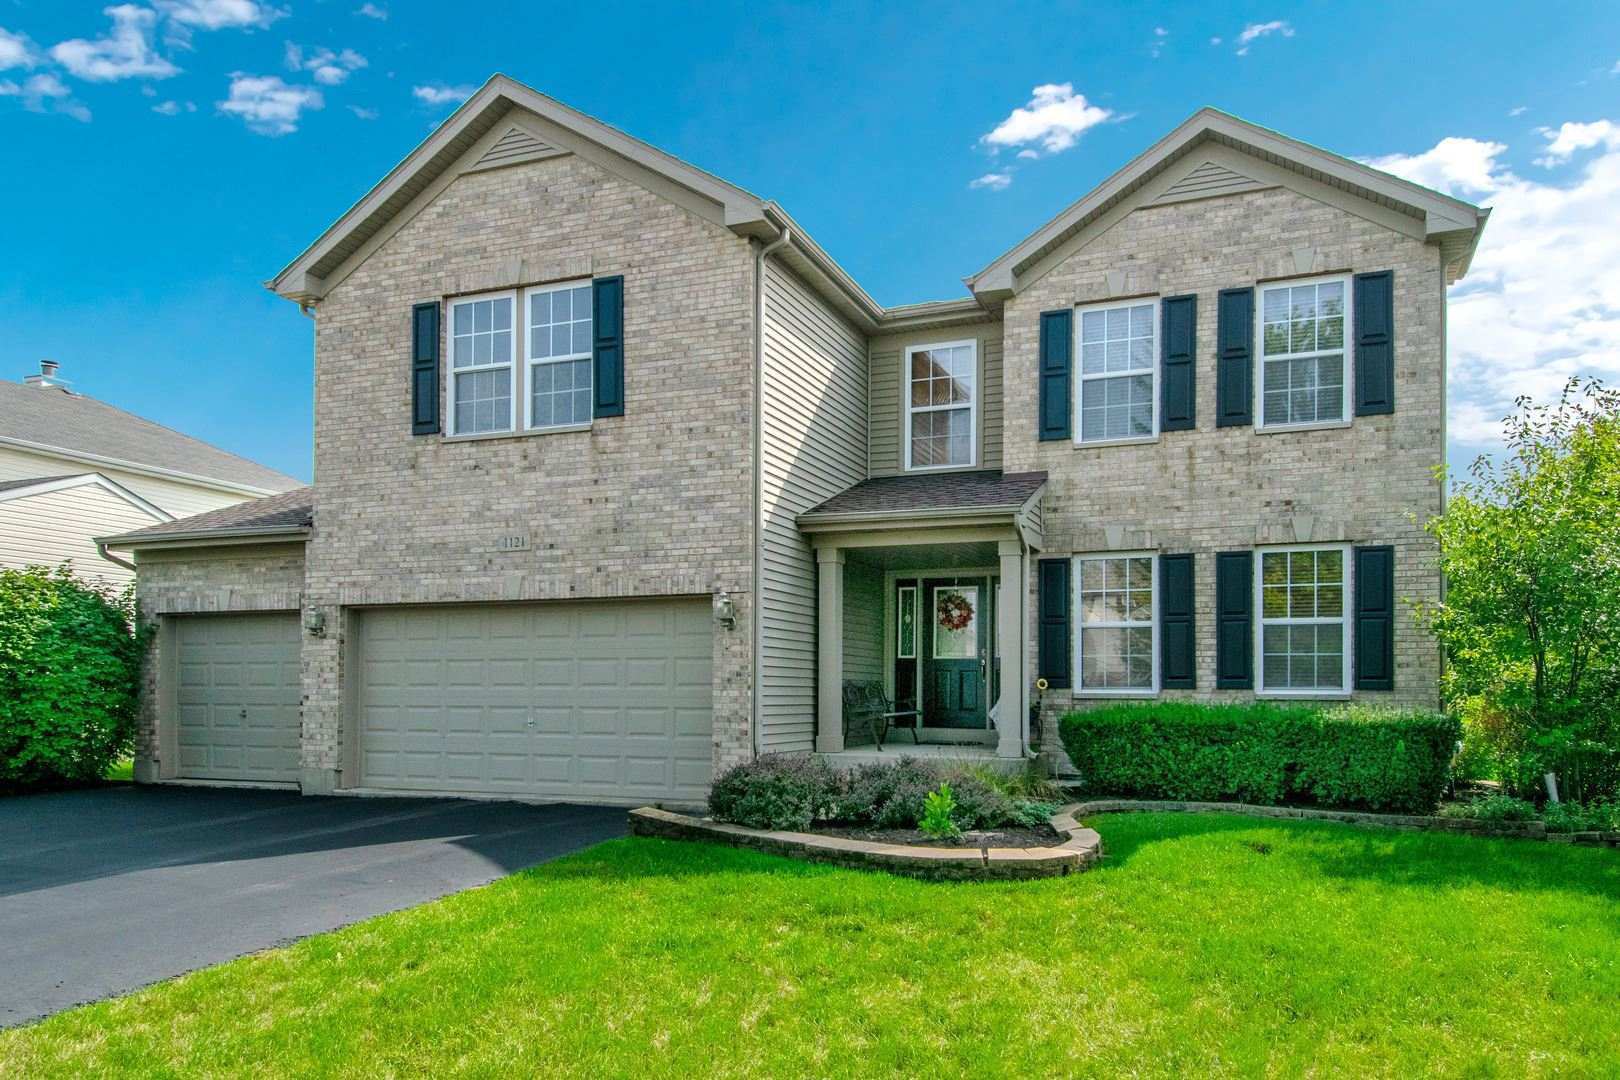 Photo of 1121 BUTTERFIELD Circle W, Shorewood, IL 60404 (MLS # 10913170)